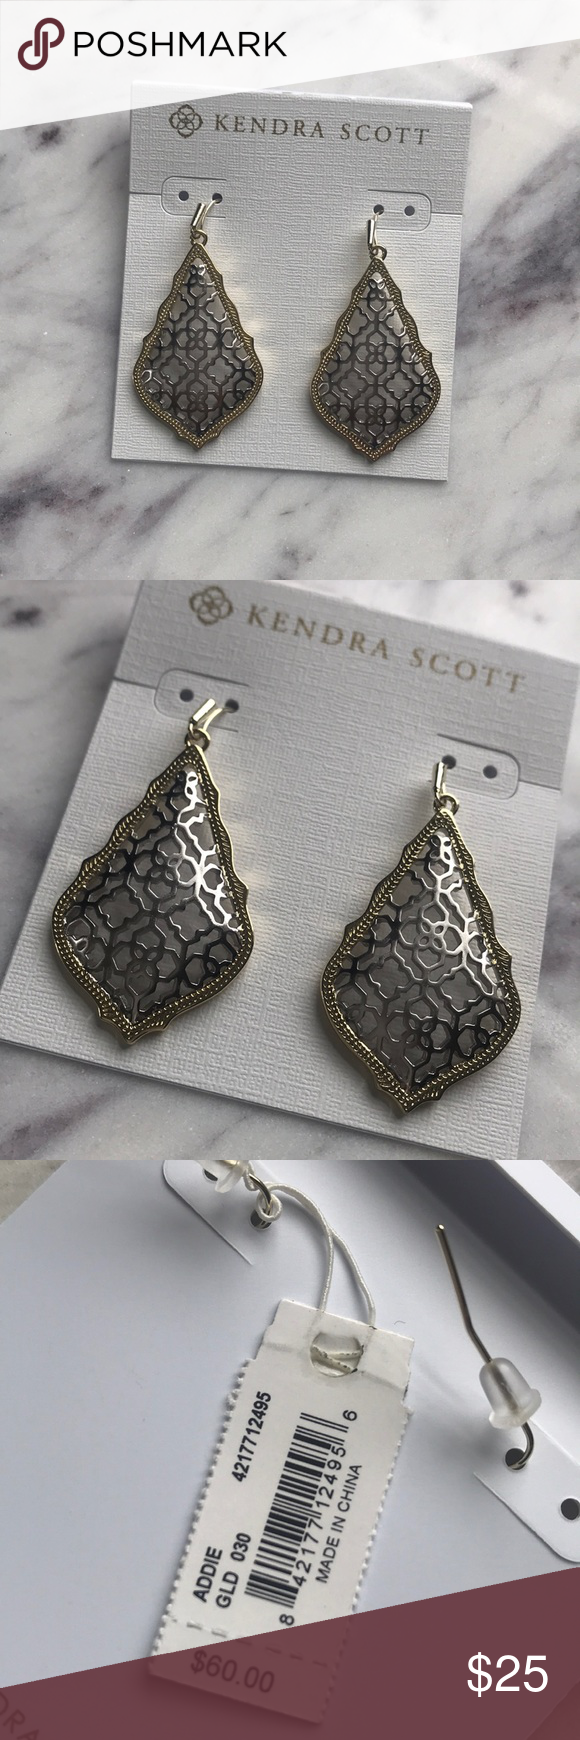 Kendra Scott Addie Earrings Gold Silver Brand New In